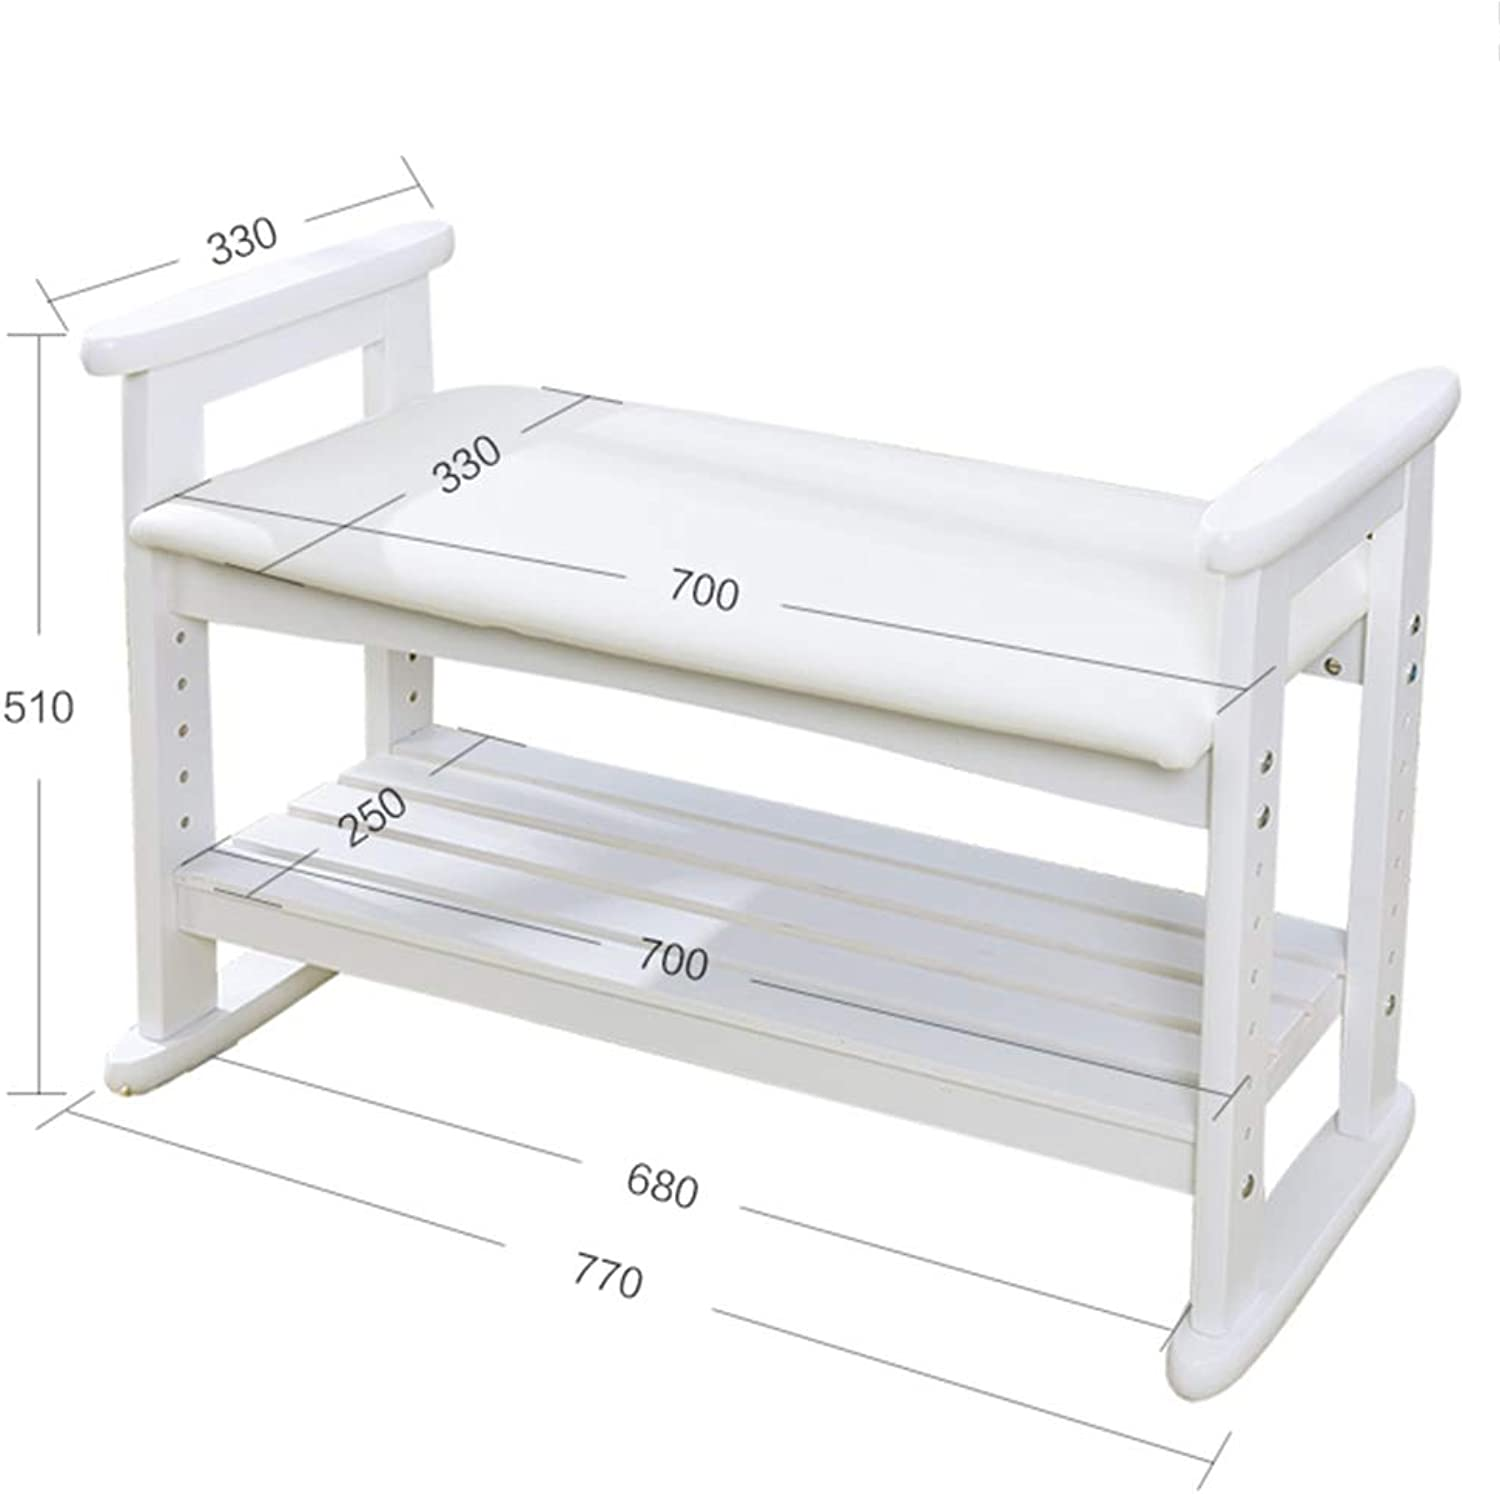 JIANFEI Footstool shoes Shelf Rack Height Adjustable PU Cushion Armrest Multi-Layer,2 Colours 2 Size (color   White, Size   770x330x510mm)